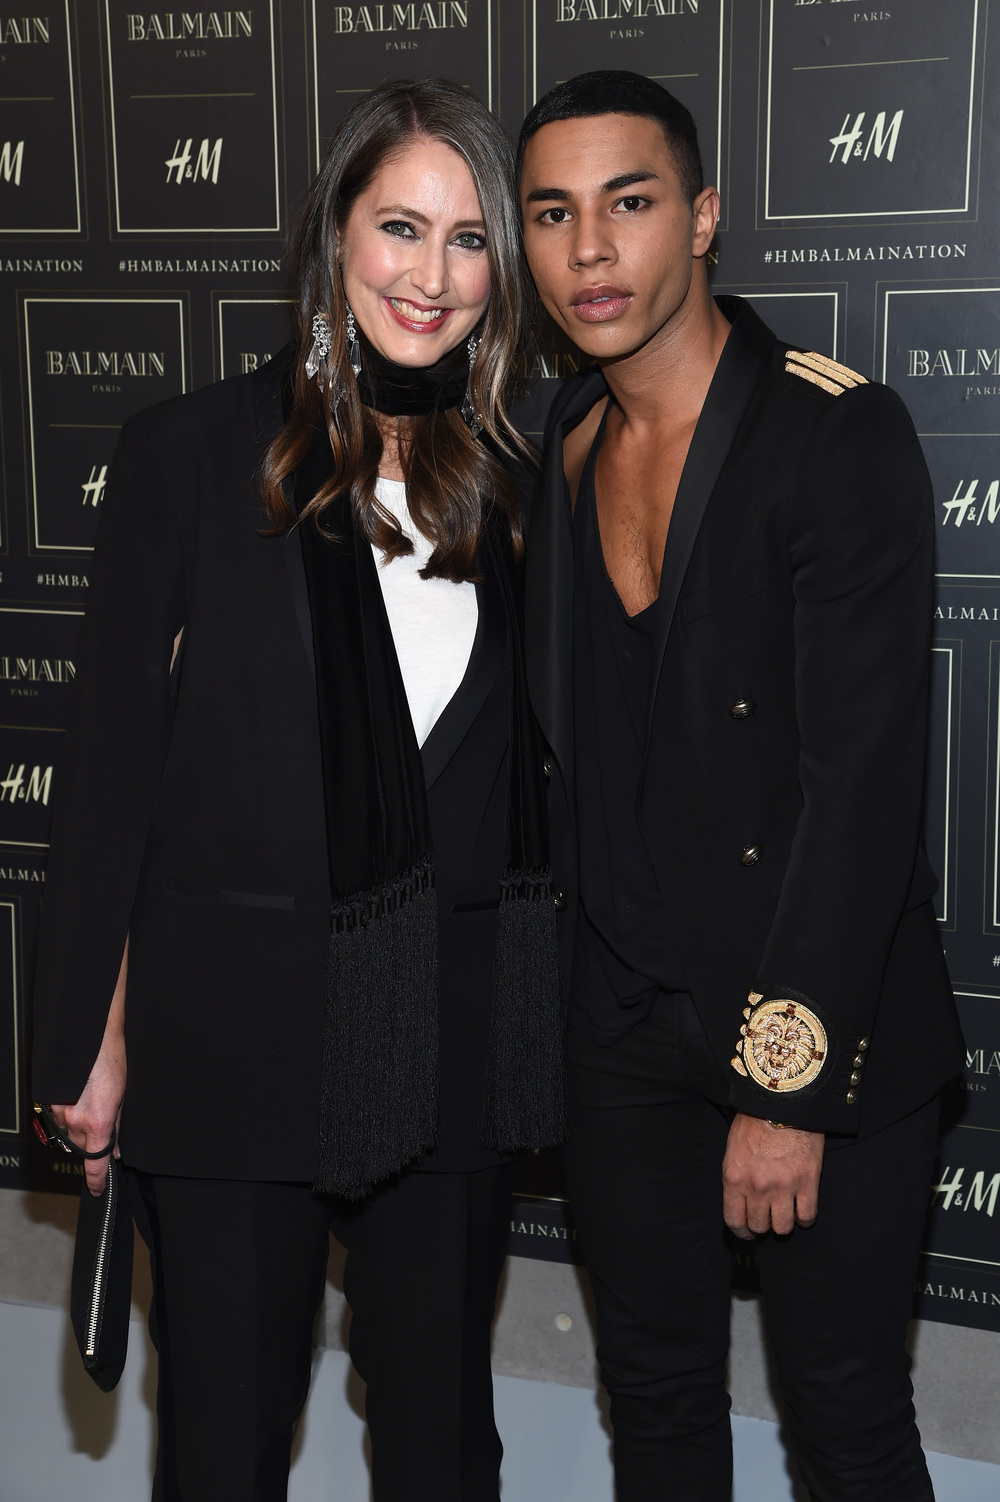 NEW YORK, NY - OCTOBER 20:  H&M Creative Advisor Ann-Sofie Johansson and Creative Director for Balmain, Olivier Rousteing attend the BALMAIN X H&M Collection Launch at 23 Wall Street on October 20, 2015 in New York City.  (Photo by Dimitrios Kambouris/Getty Images for H&M) *** Local Caption *** Olivier Rousteing;Ann Sofie Johansson